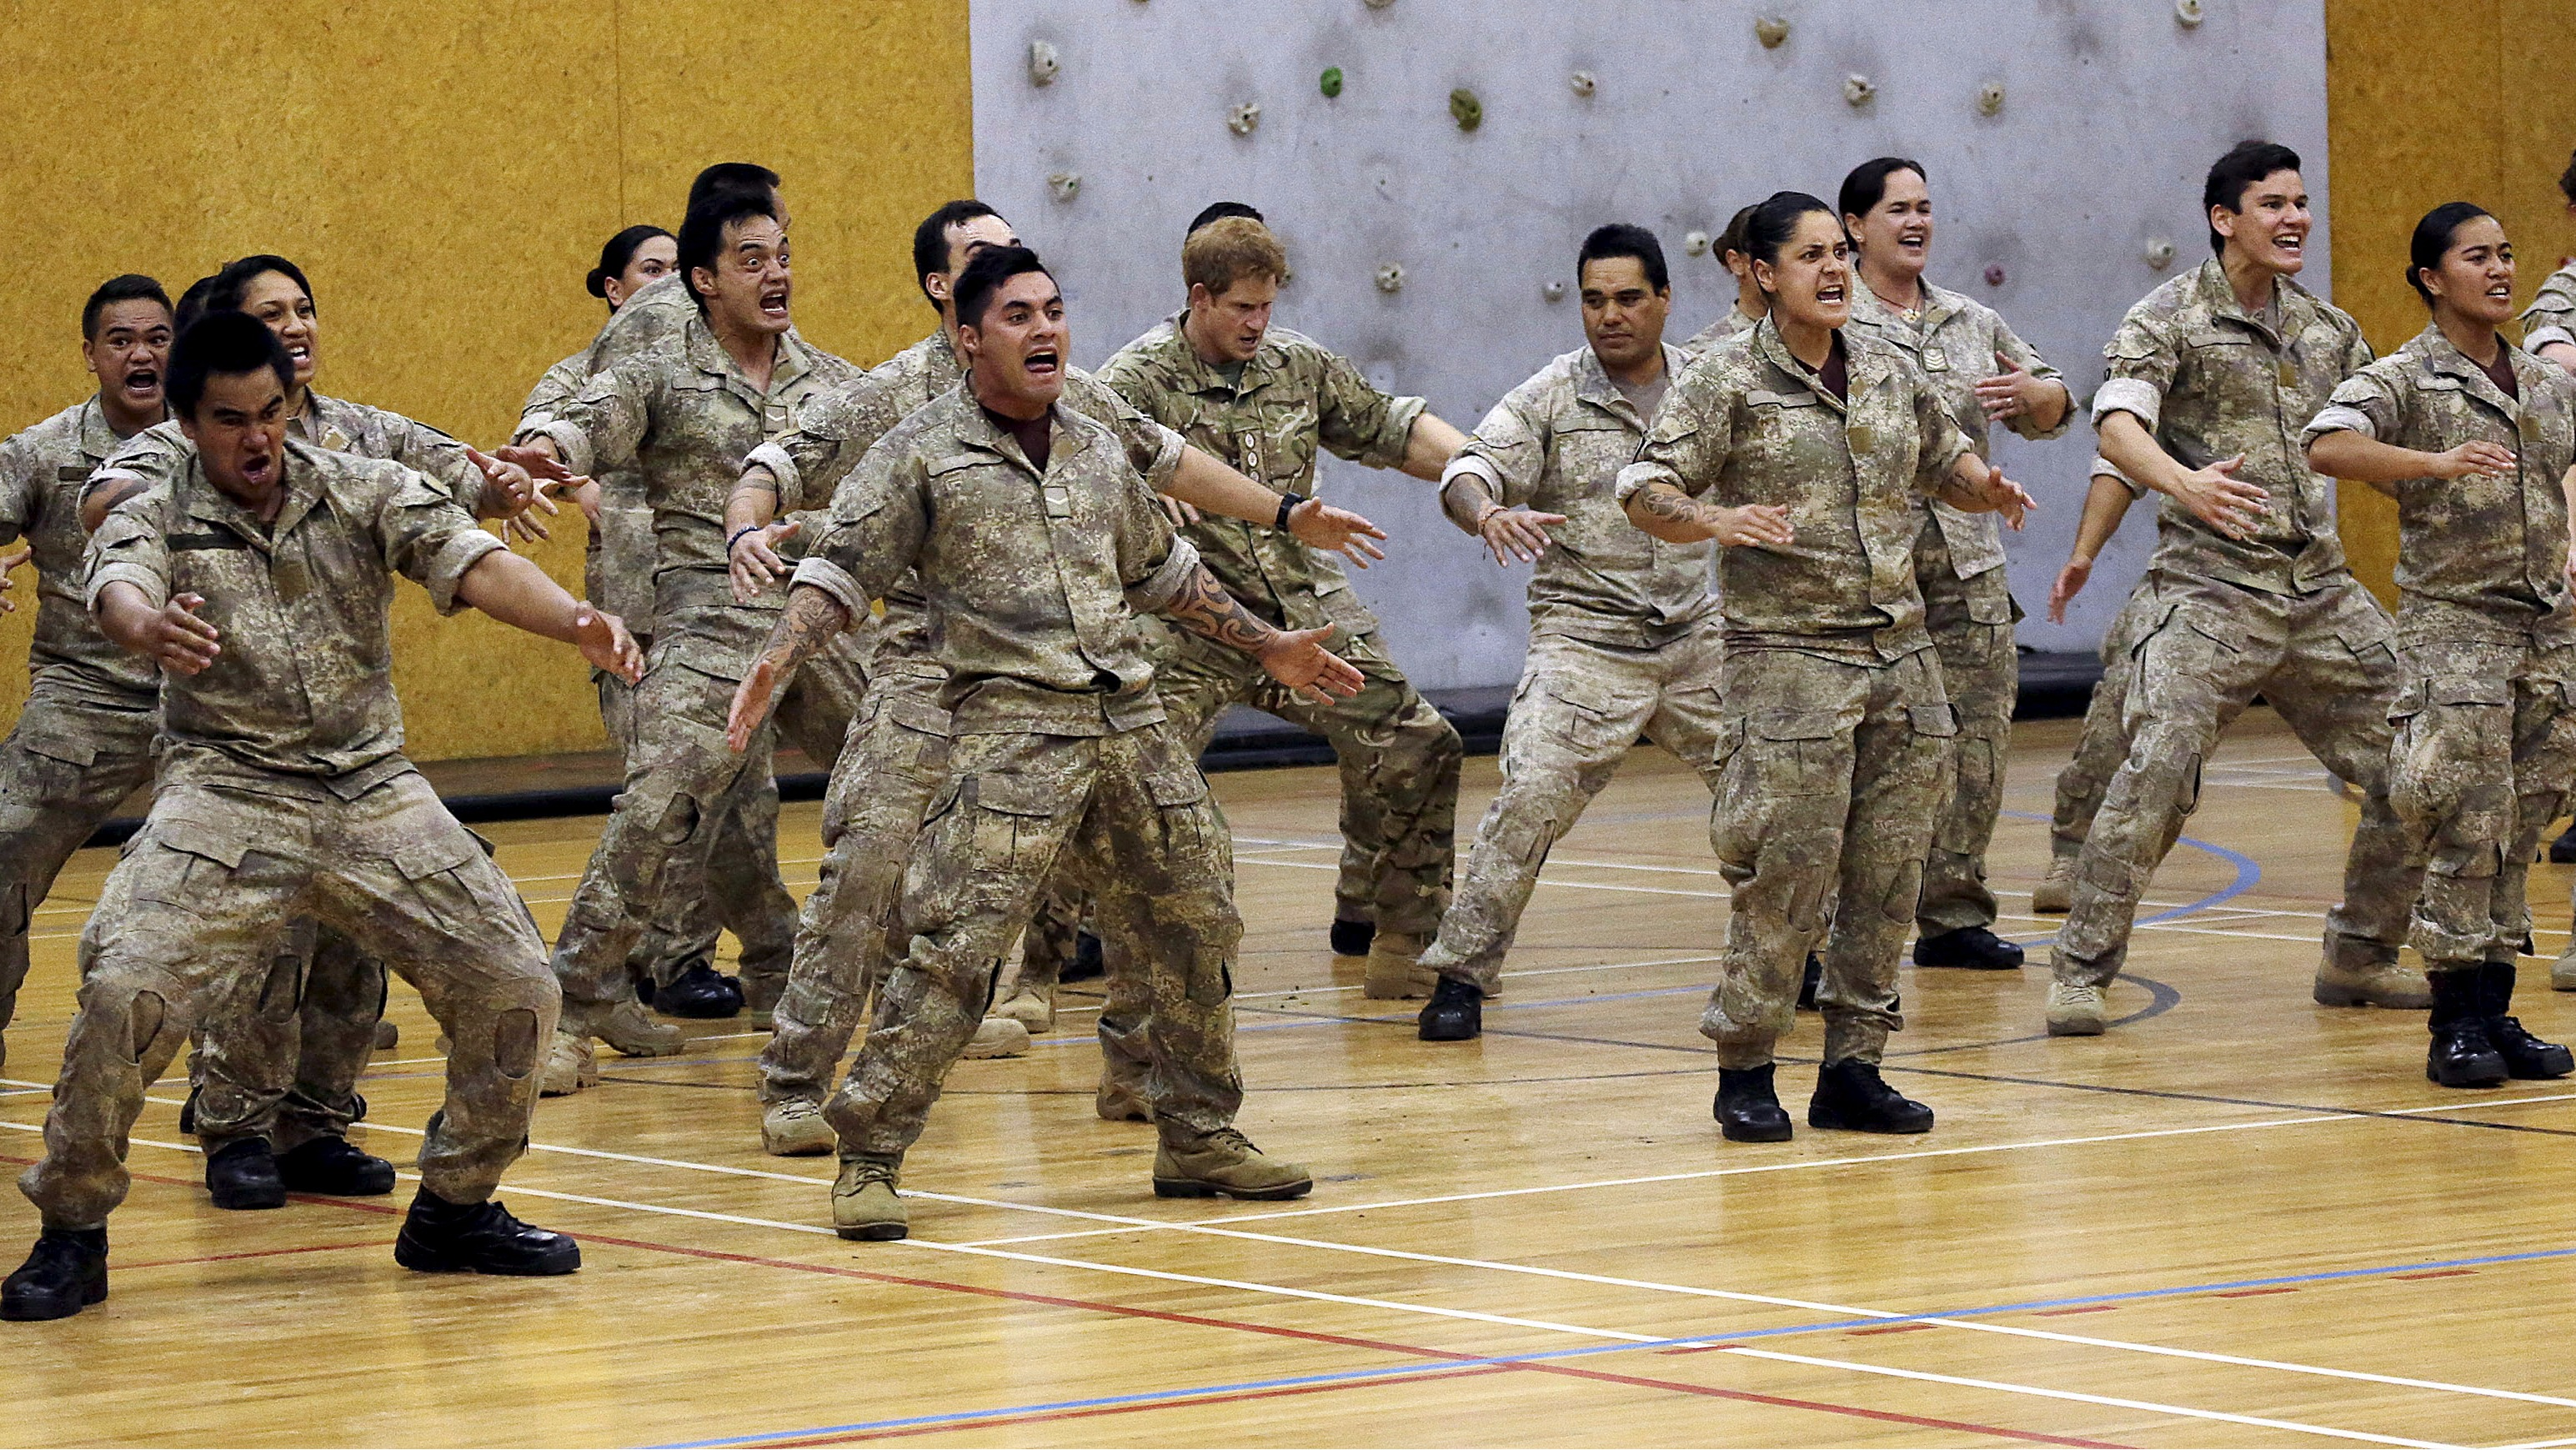 Prince Harry Performs The Haka With New Zealand Army Itv